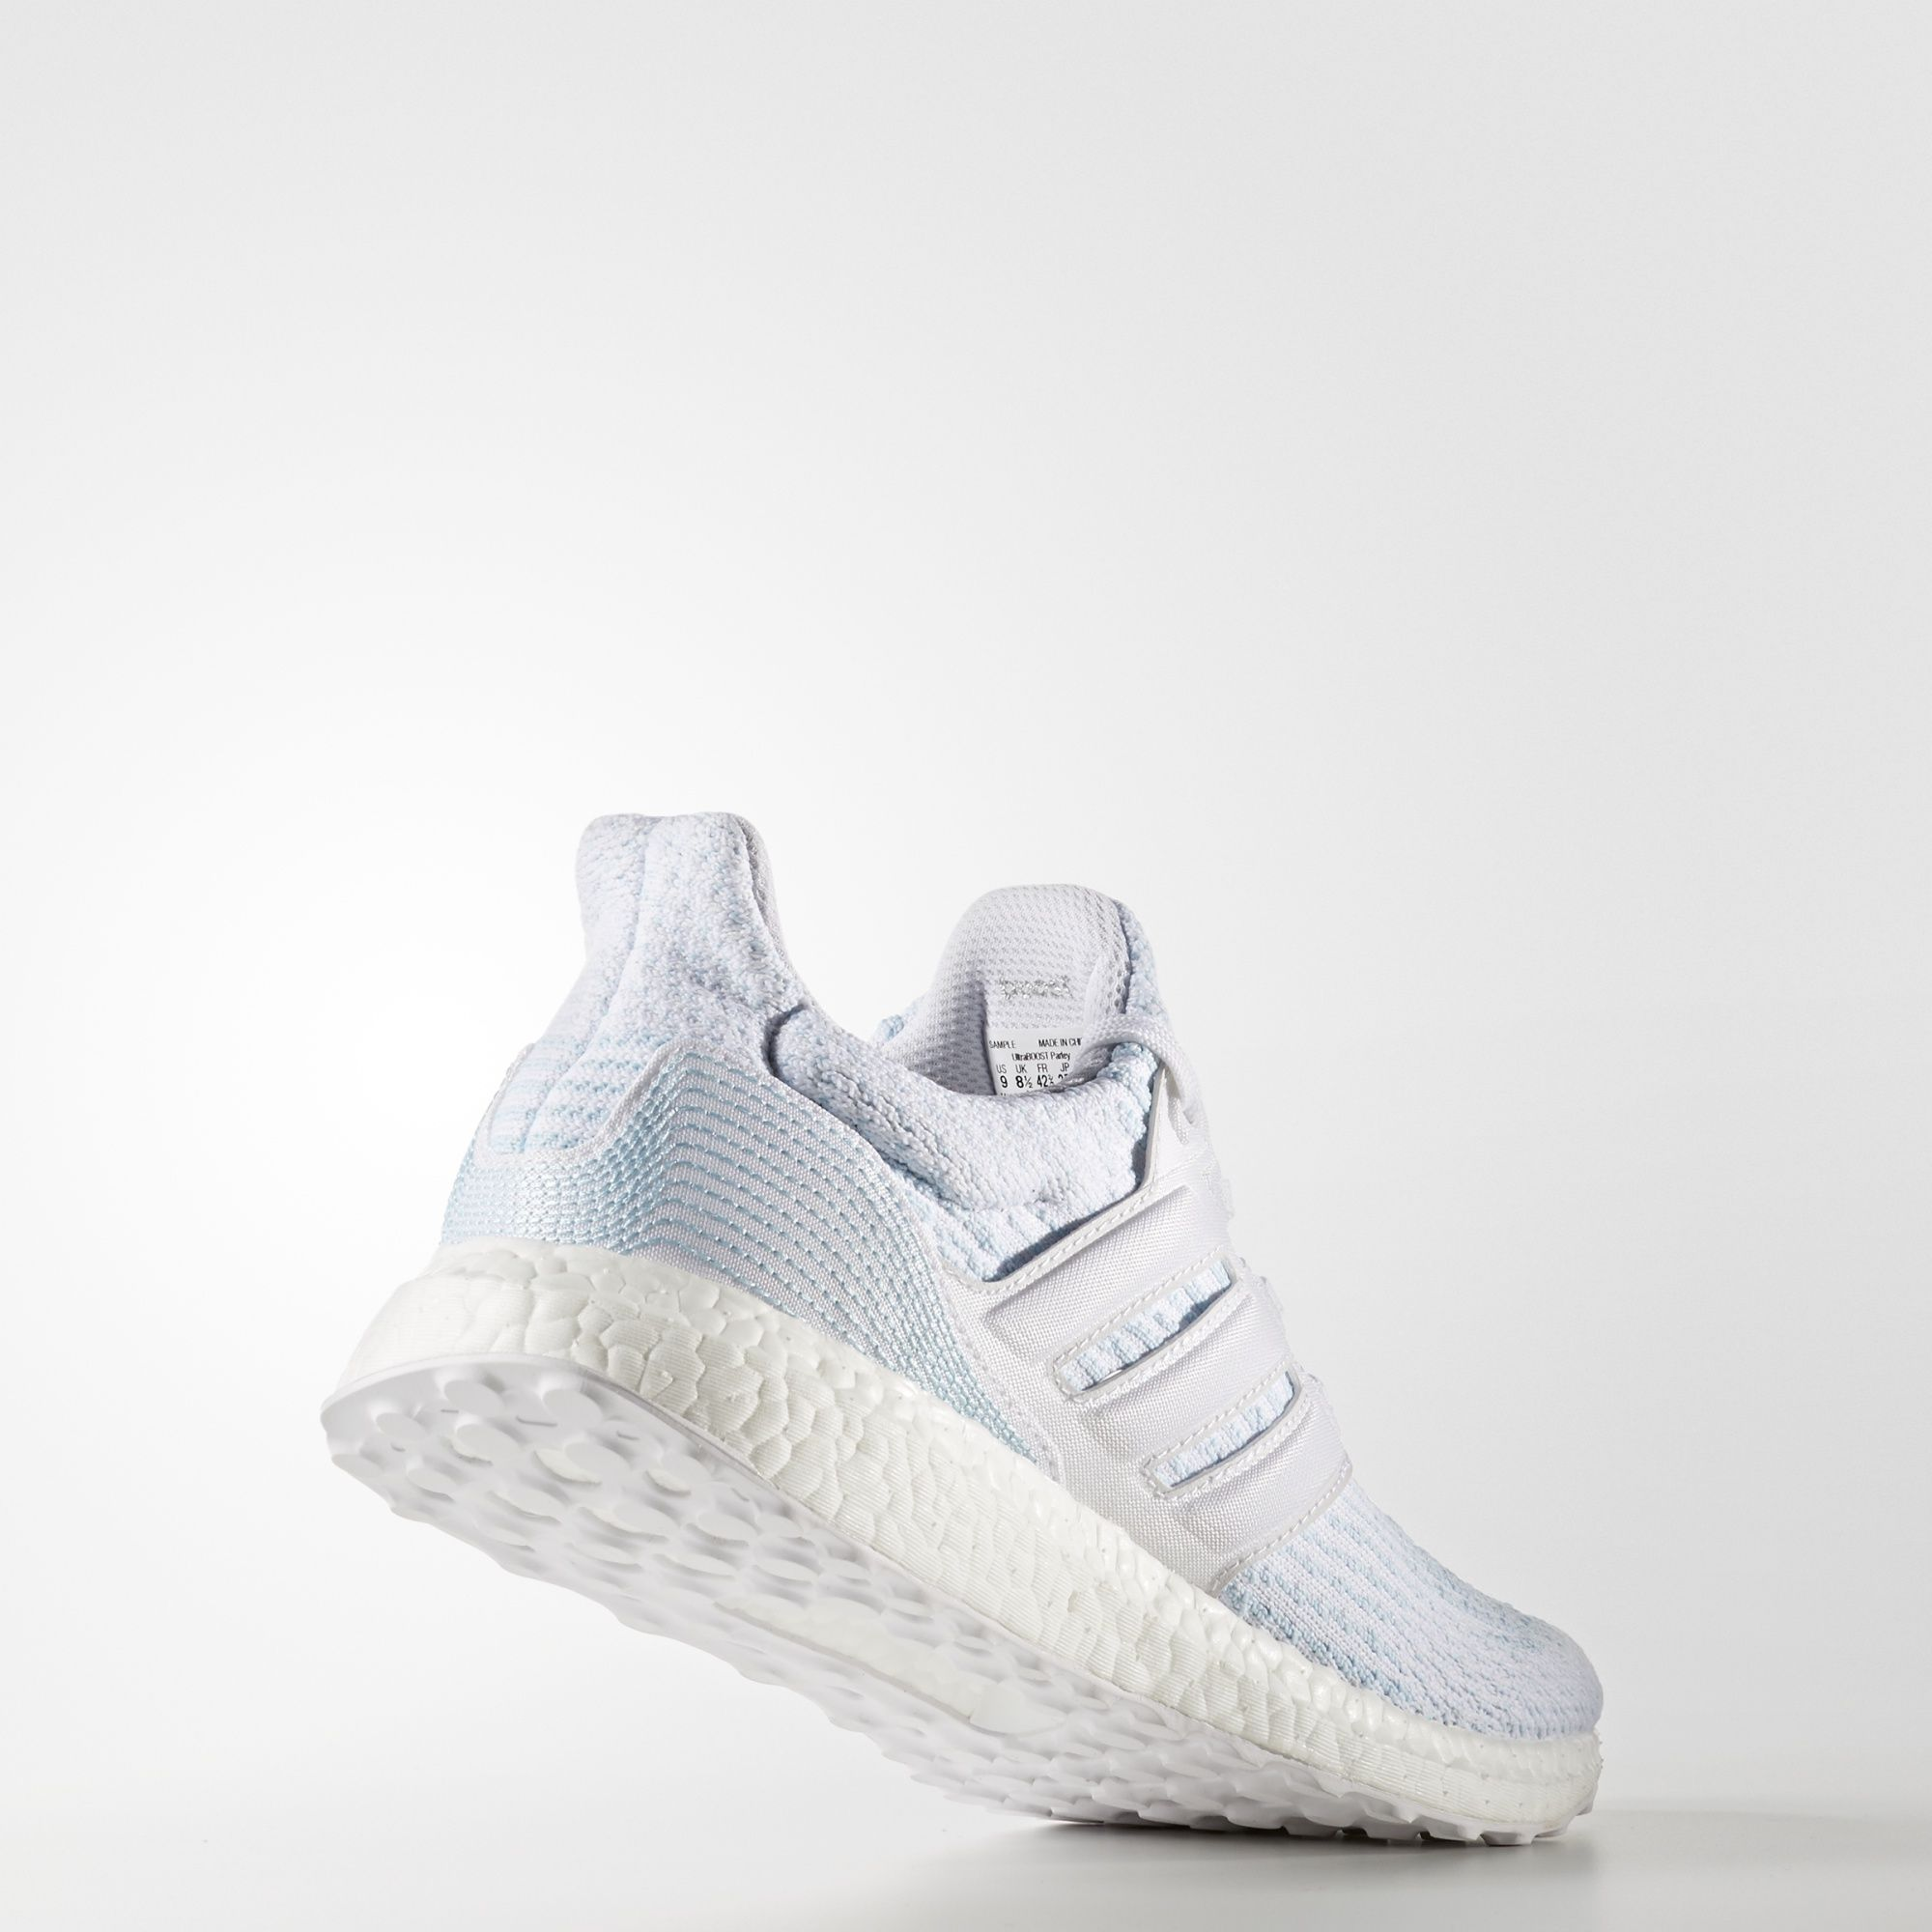 Parley x adidas Ultra Boost Icey Blue CP9685 3